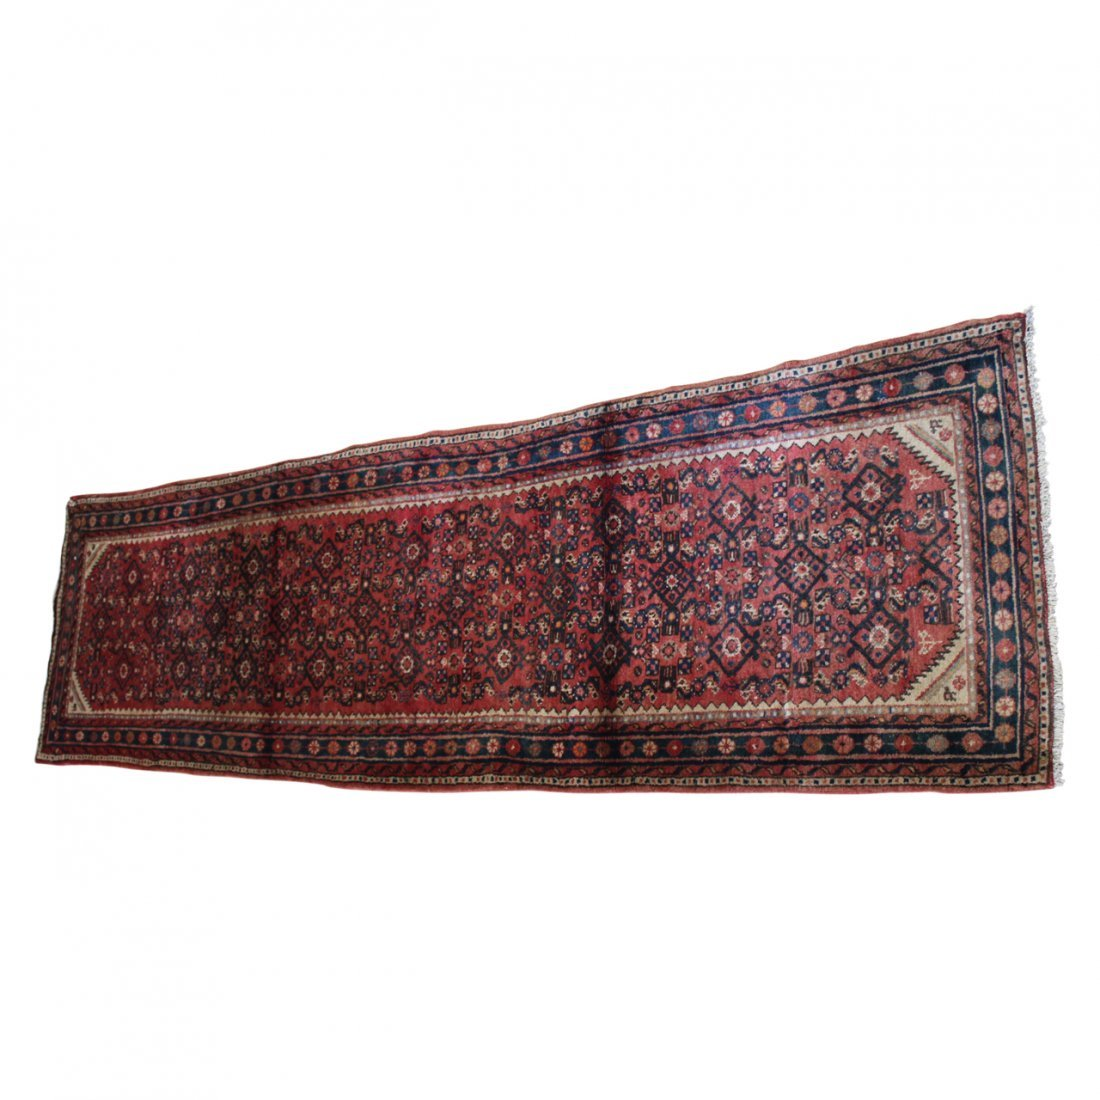 Vintage Persian Malayer Carpet